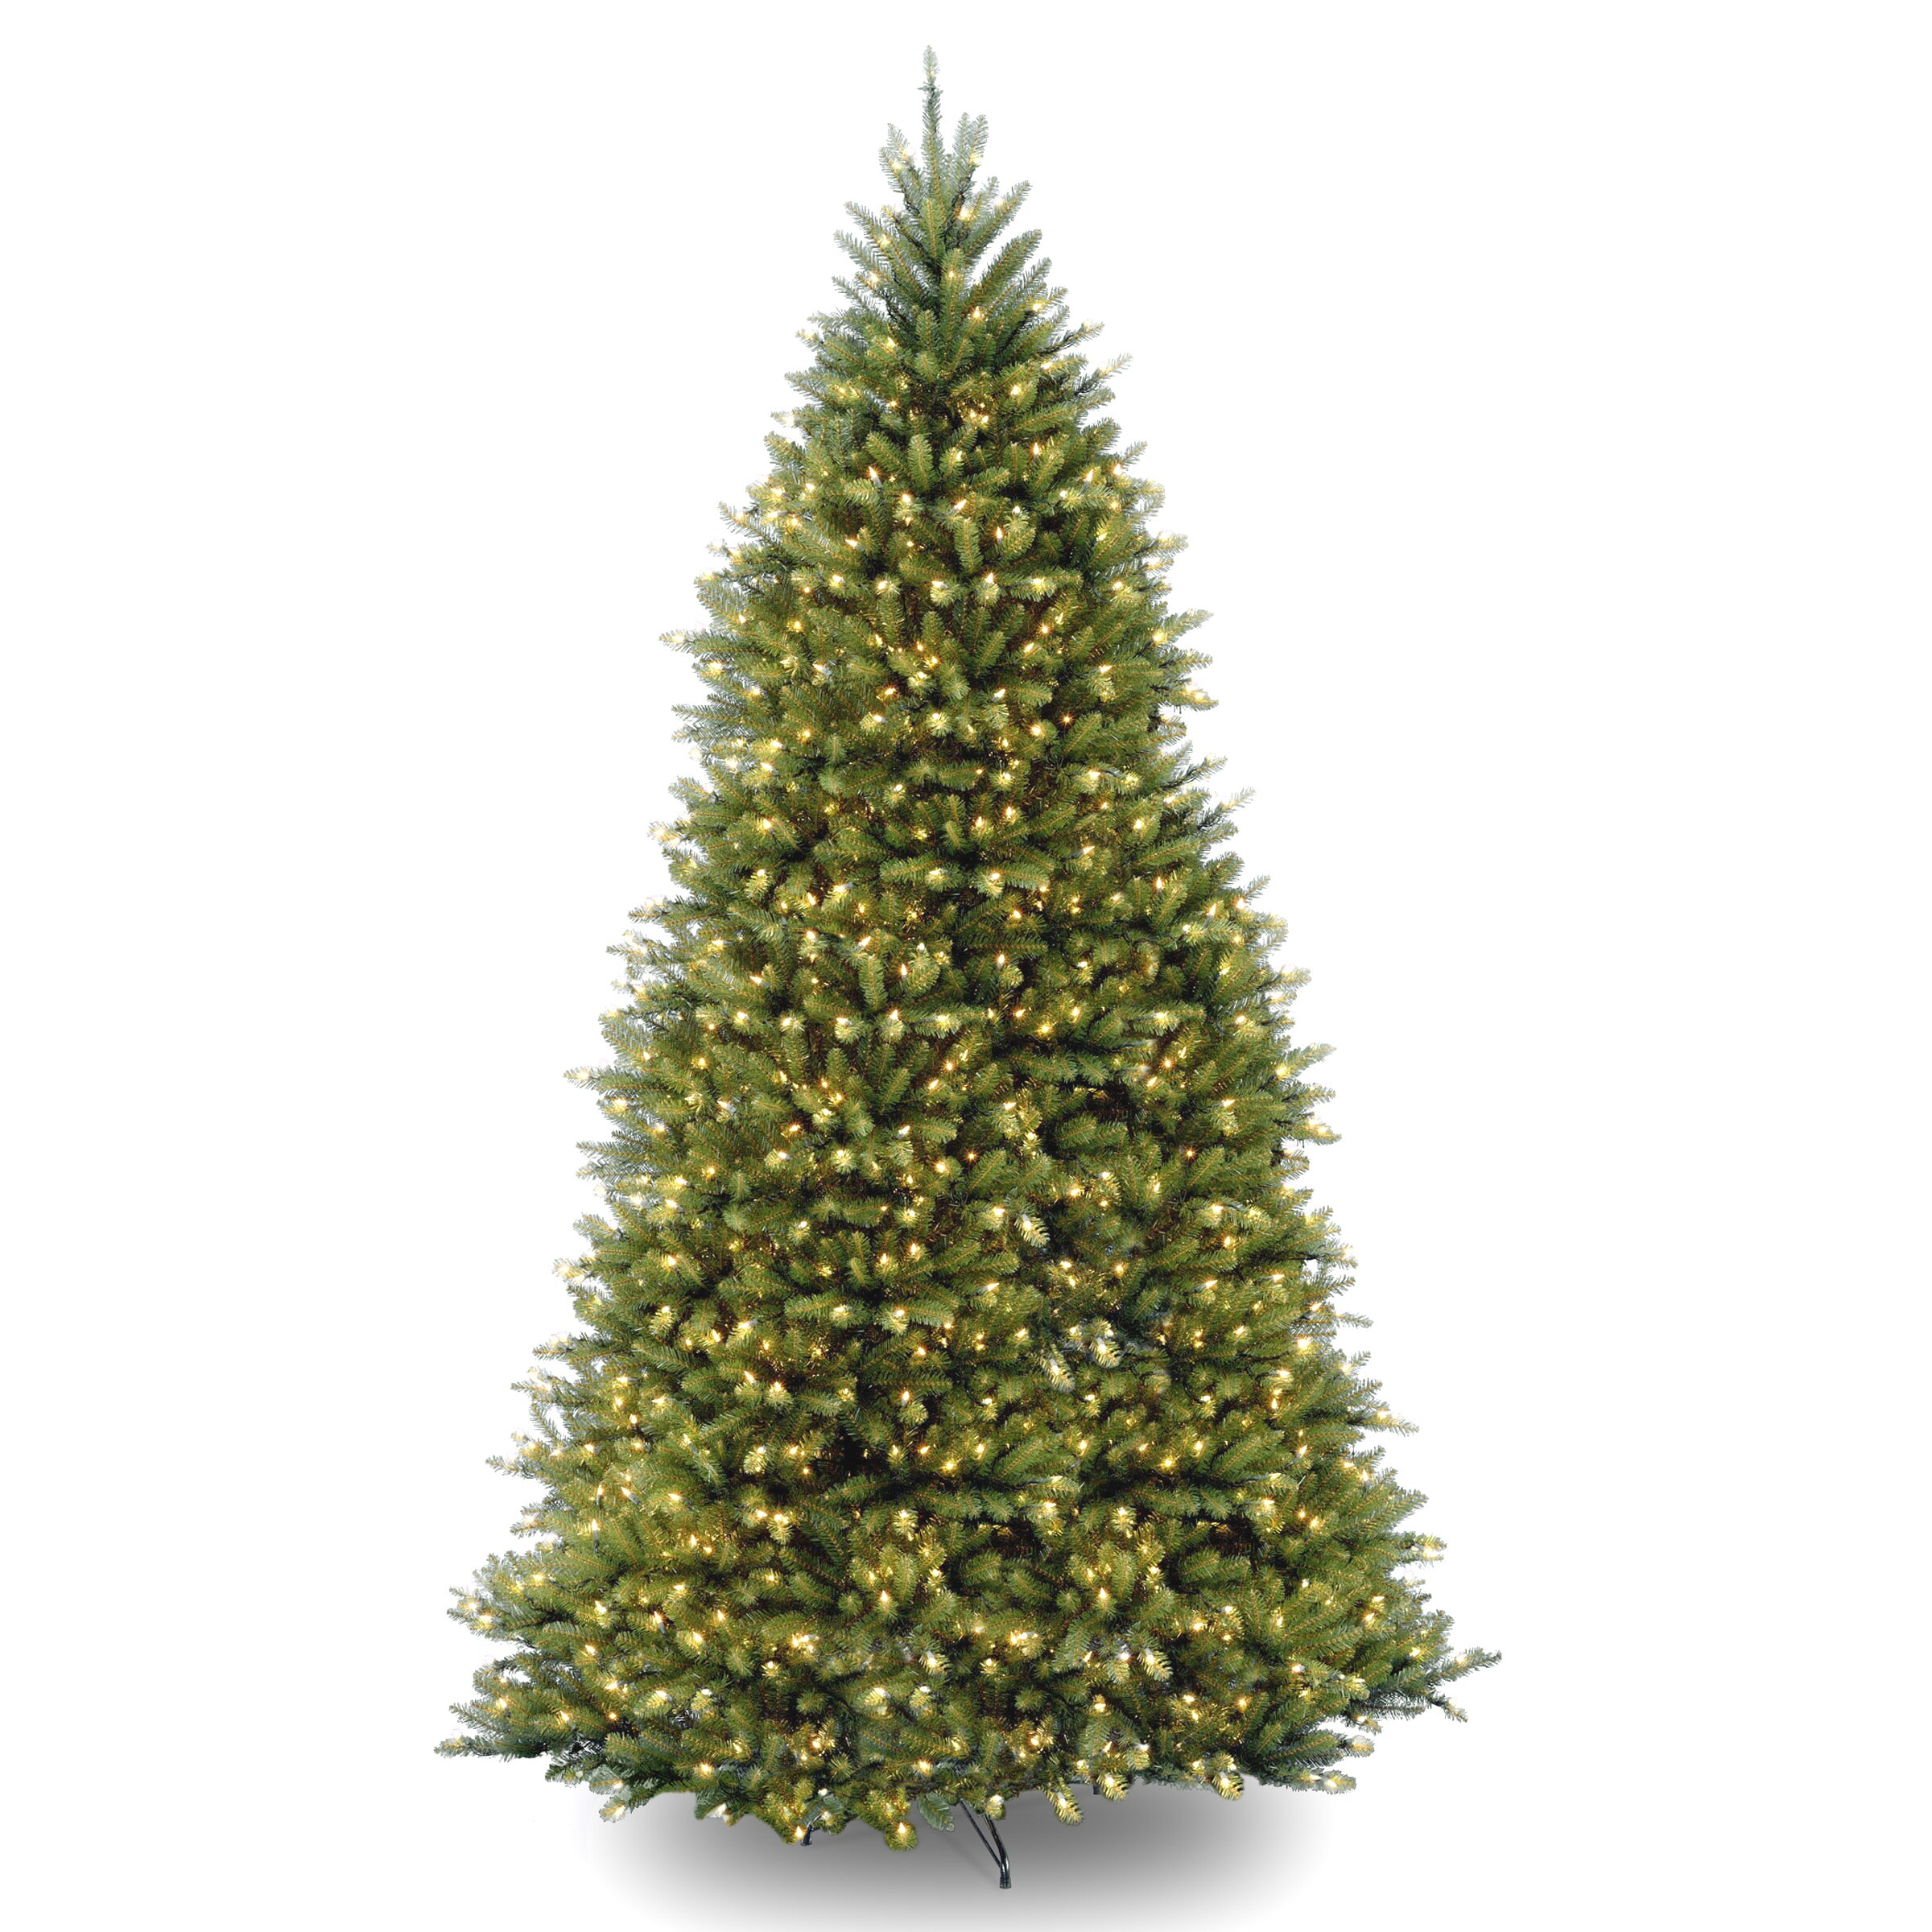 The Holiday Aisle Fir 10' Hinged Green Artificial Christmas Tree ...